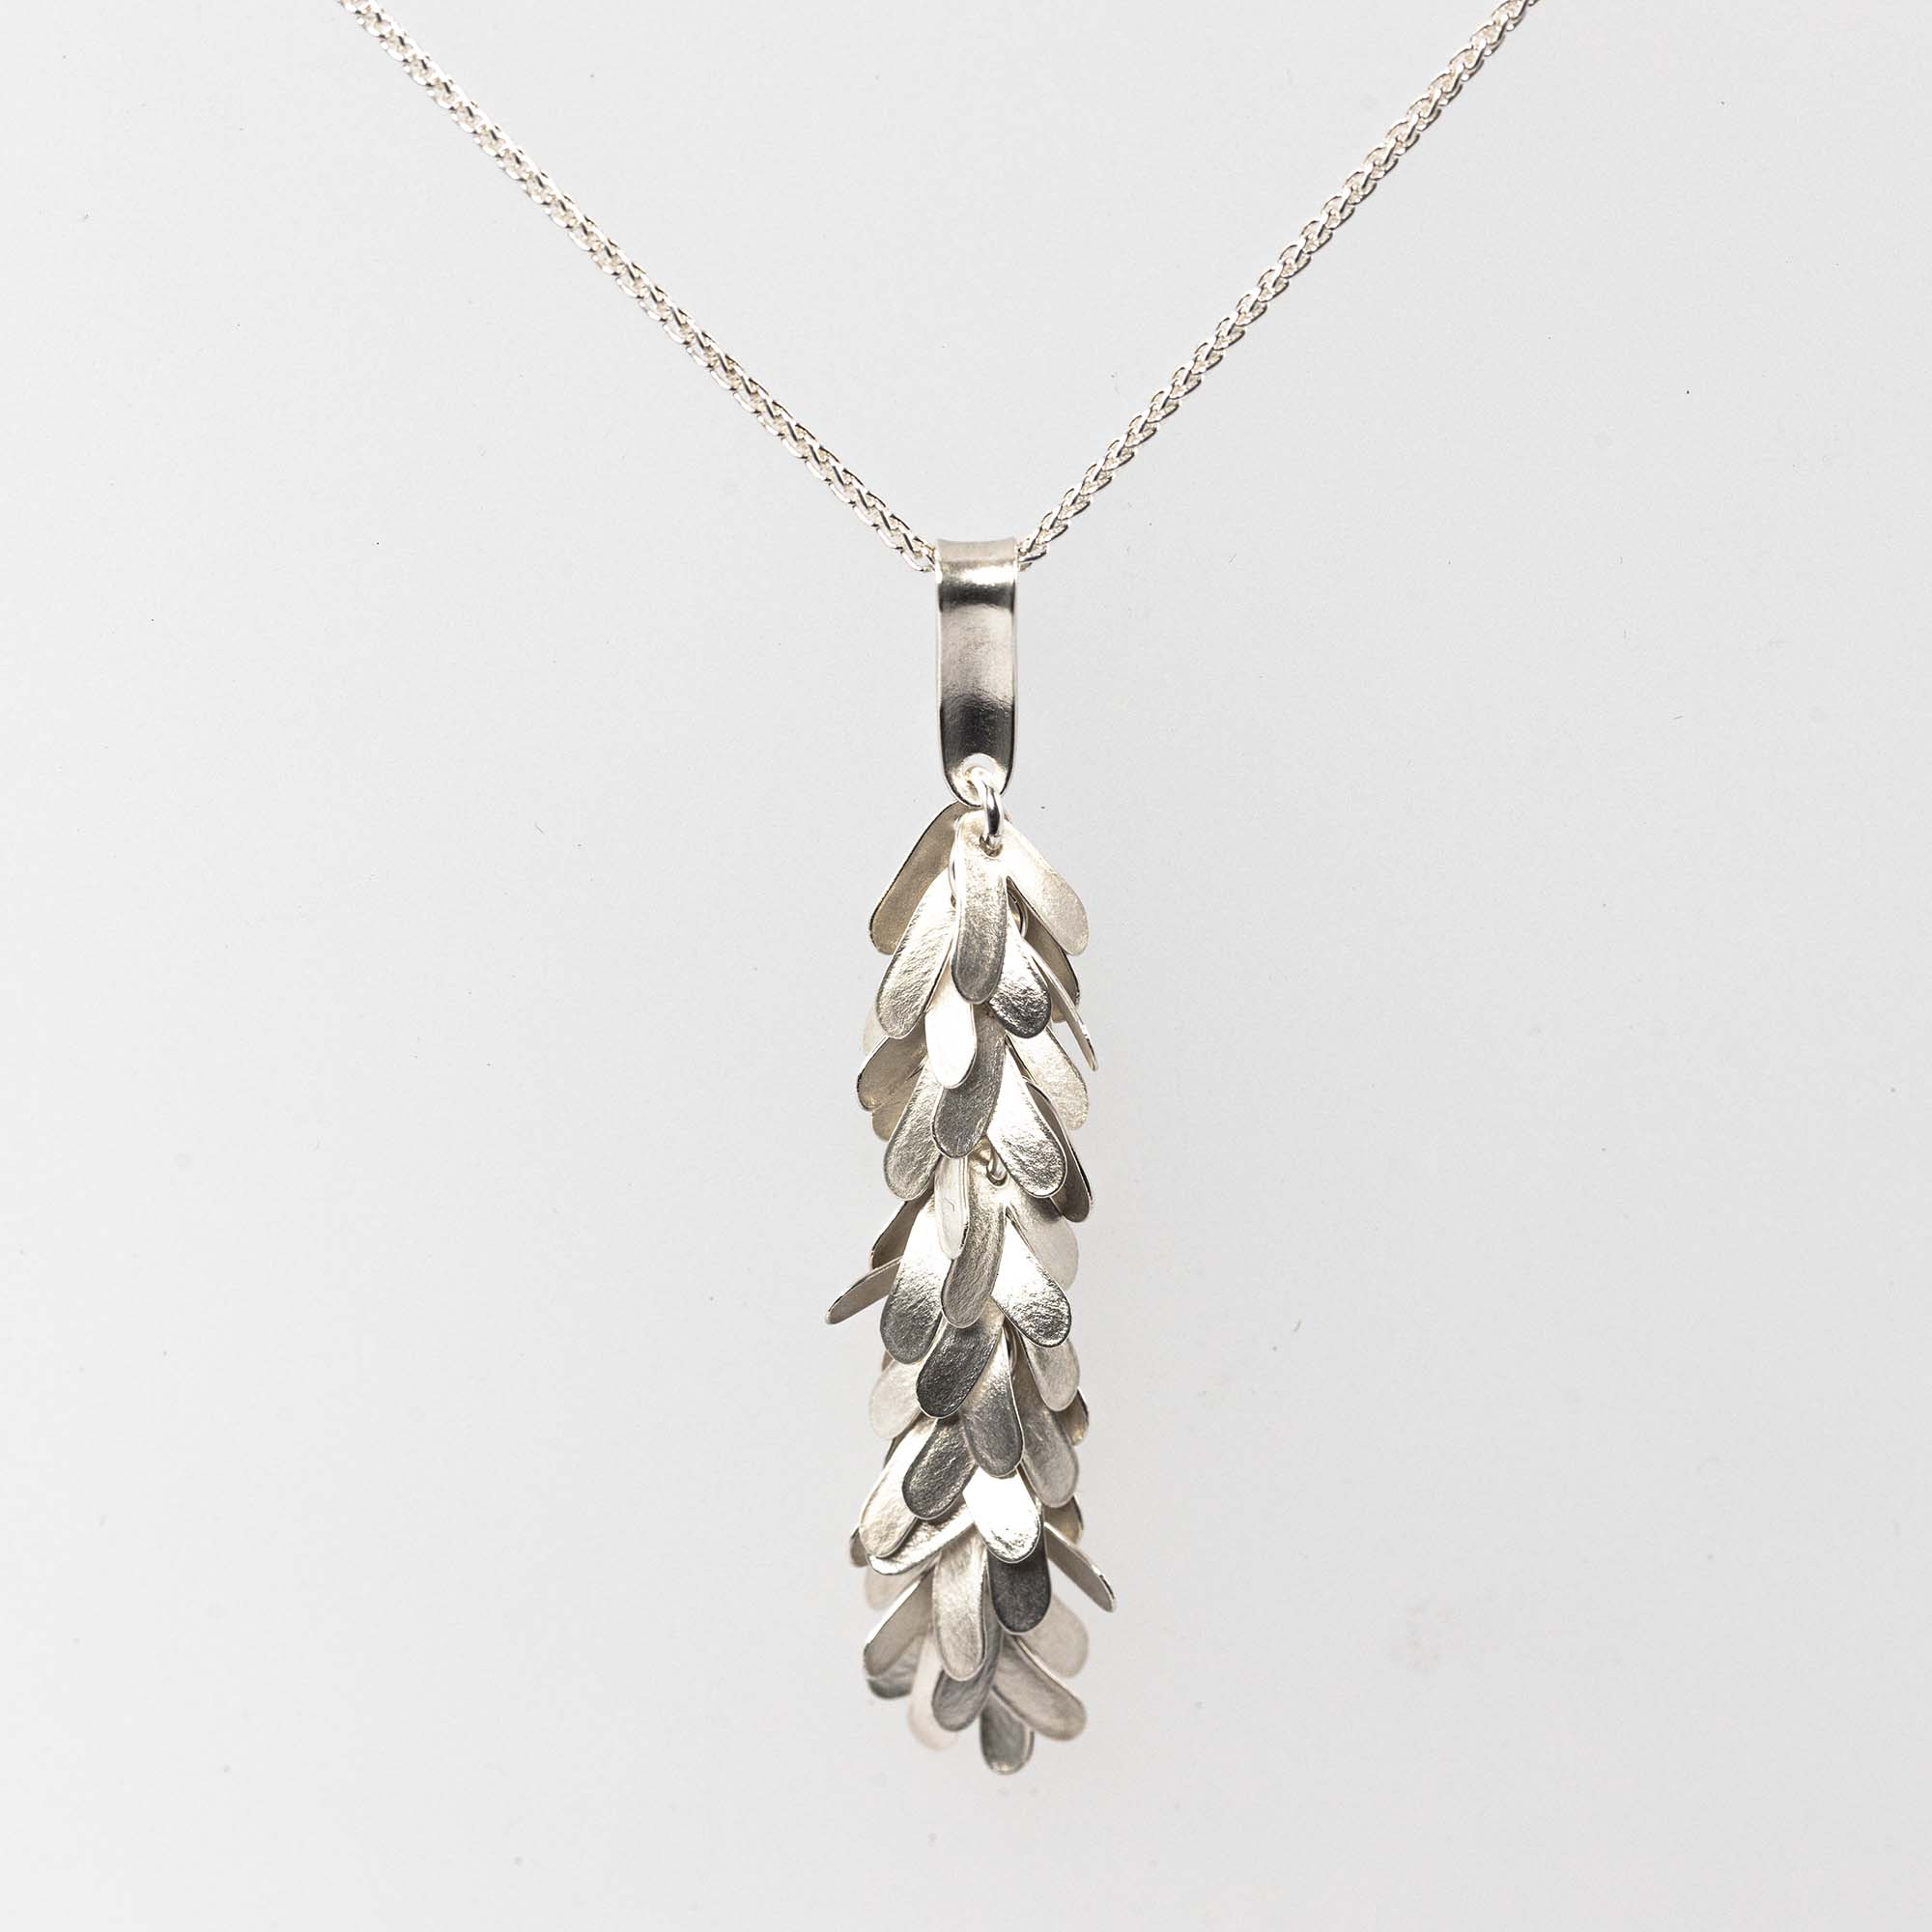 Glenn Campbell CAT-06 Catkin Pendant with 30 Links £148